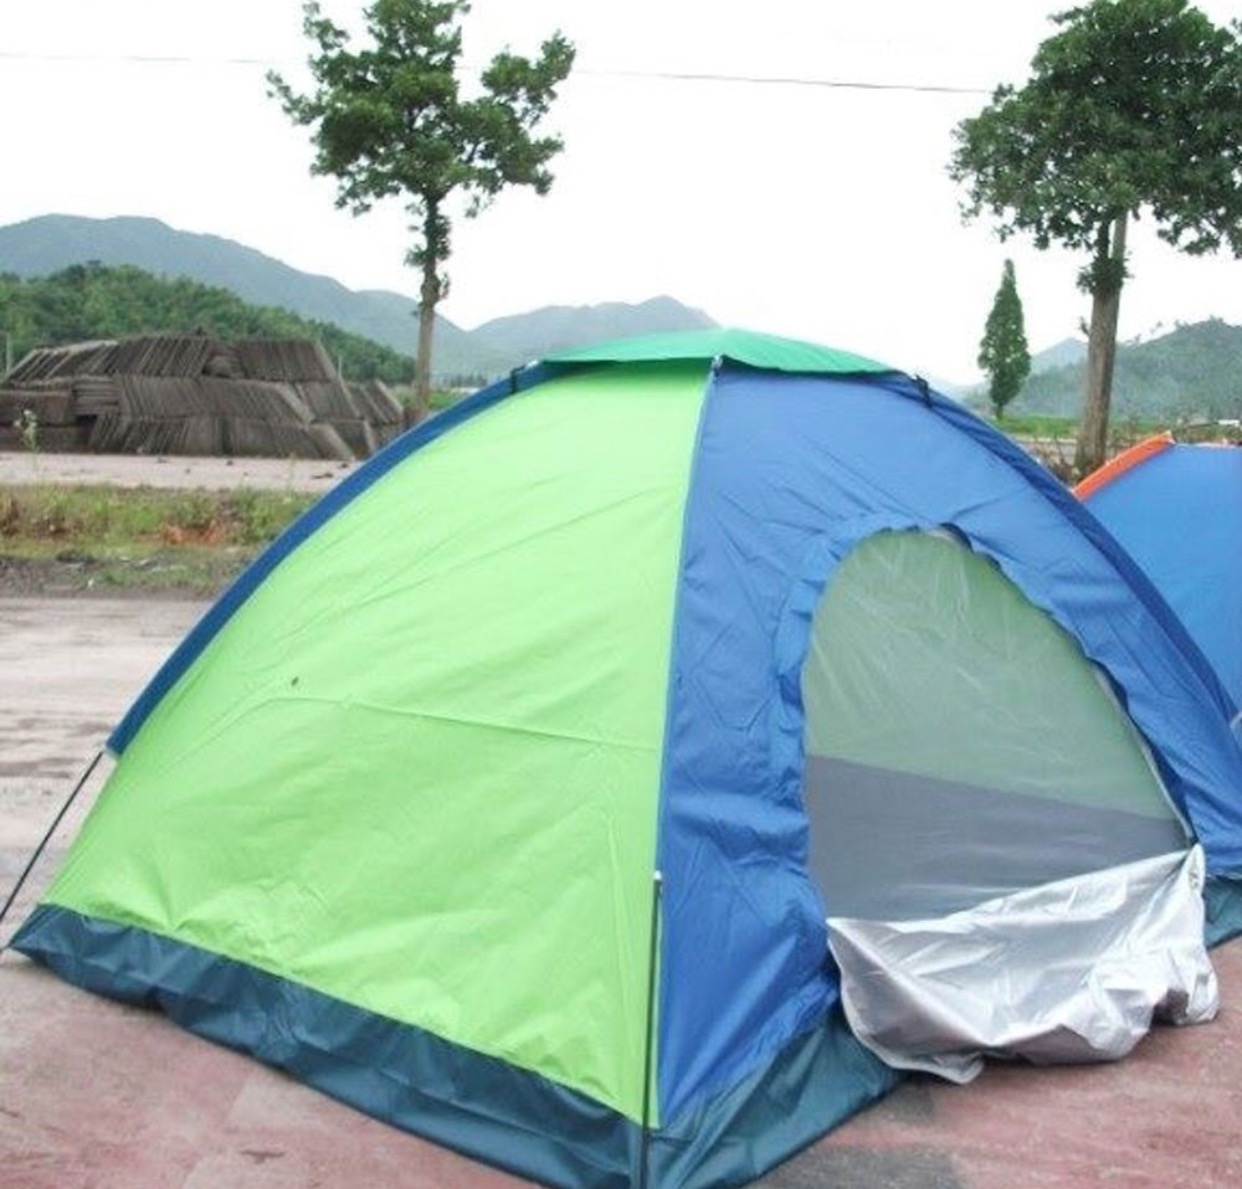 6 Person Picnic Hiking C&ing Portable Dome Tent For Waterproof With Bag (220 x 250 x 150 cm) & 6 Person Picnic Hiking Camping Portable Dome Tent For Waterproof ...